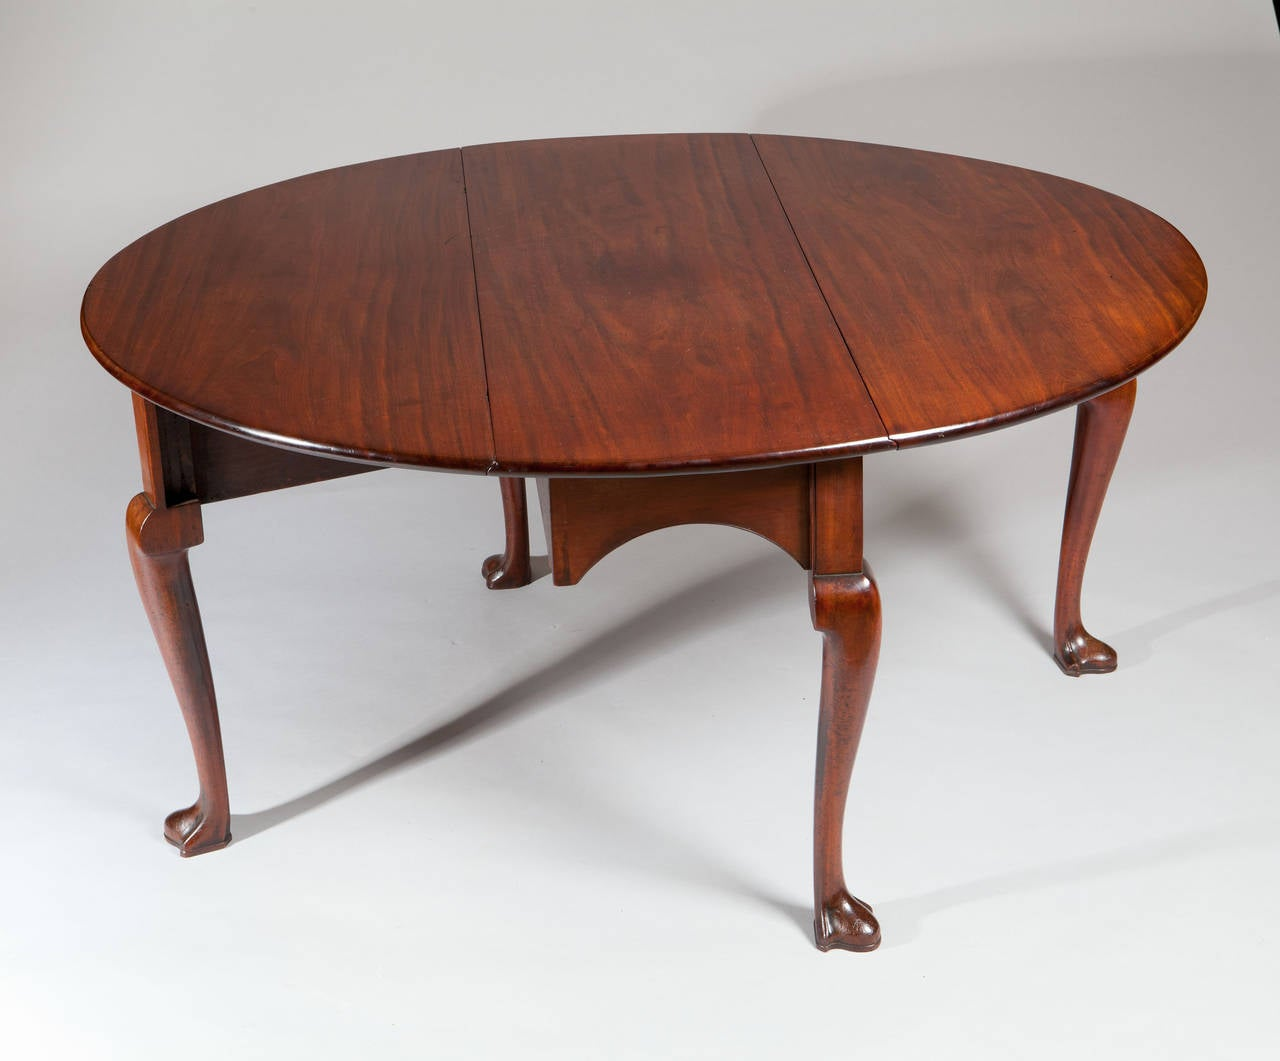 George II Mahogany GateLeg DropLeaf Dining Table For Sale At Stdibs - Antique gateleg tables